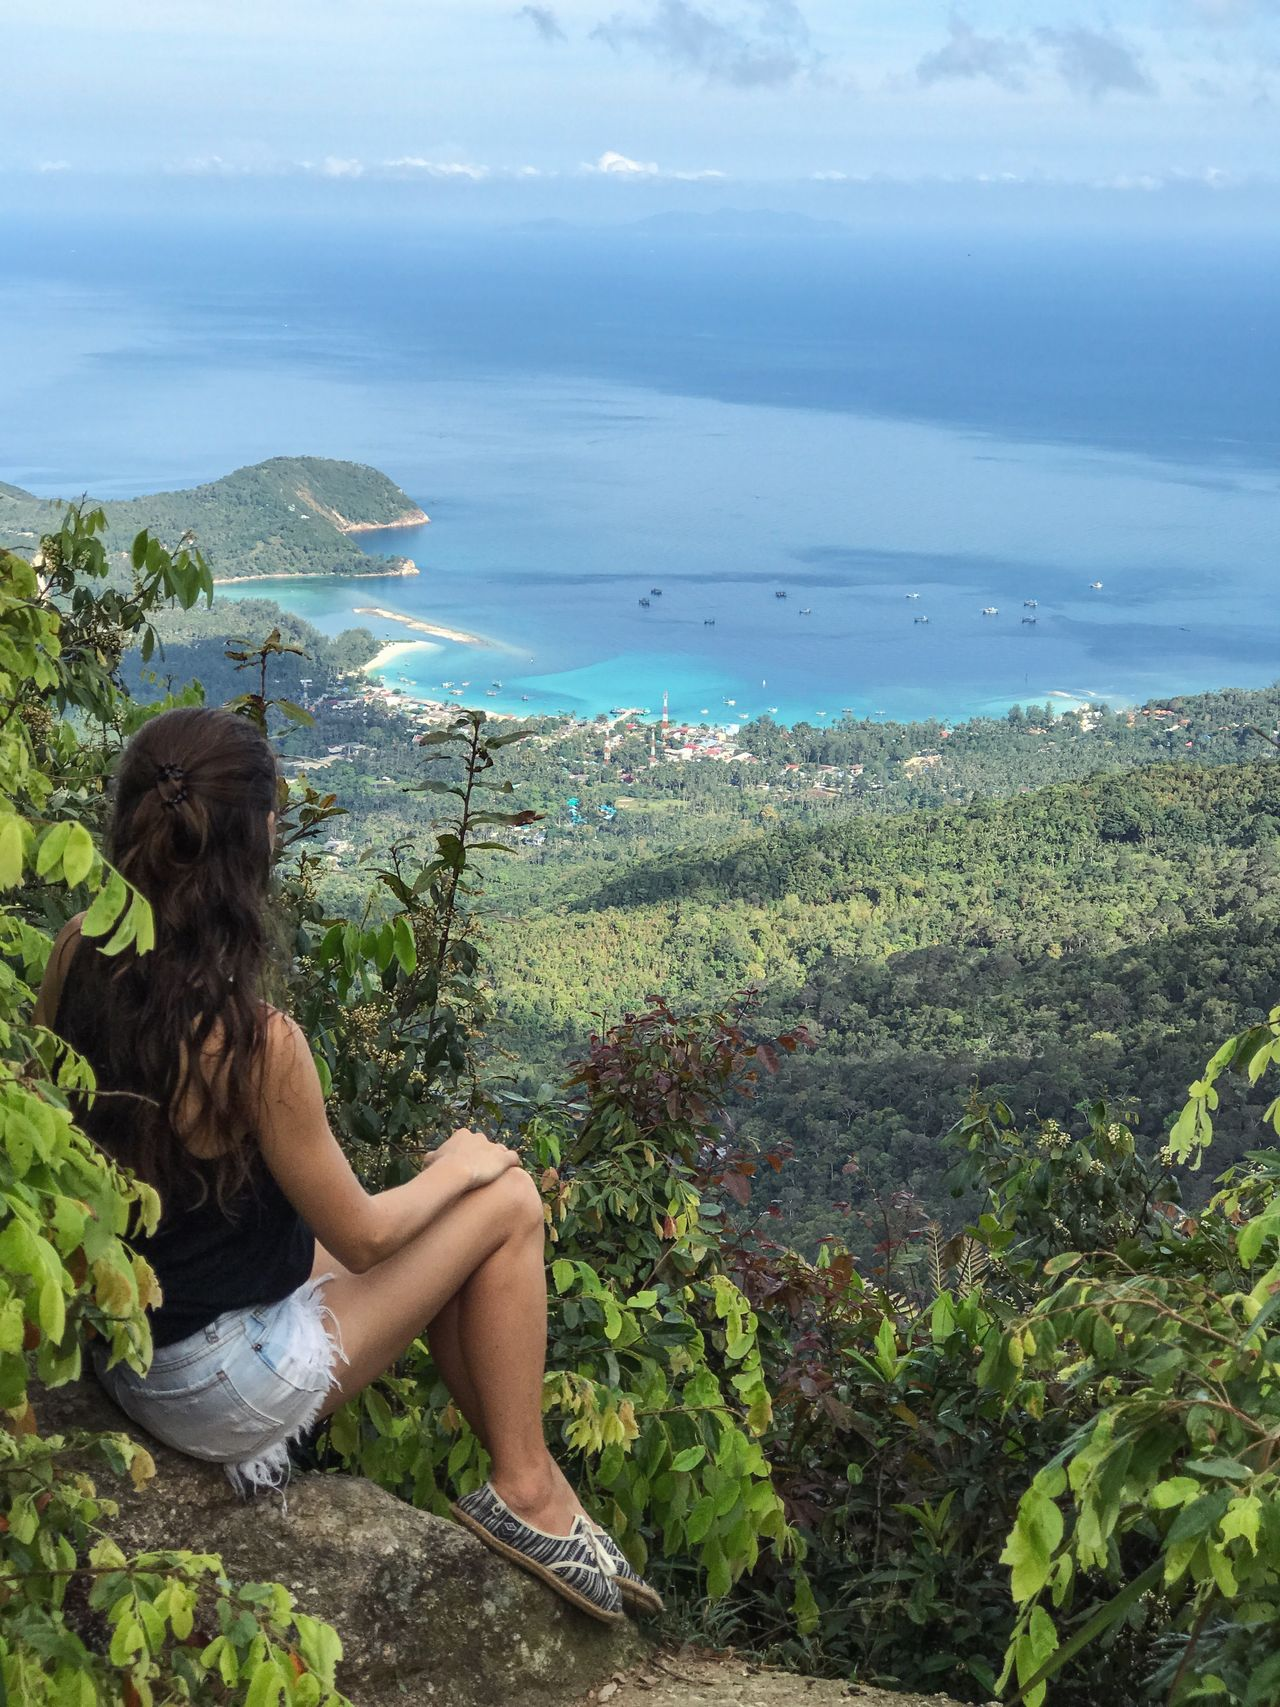 Adult Adults Only Beauty Beauty In Nature Full Length Idyllic Landscape Nature One Person One Woman Only One Young Woman Only Only Women Outdoors People Relaxation Scenics Sea Sitting Summer Tourism Tourist Travel Vacations Women Young Adult